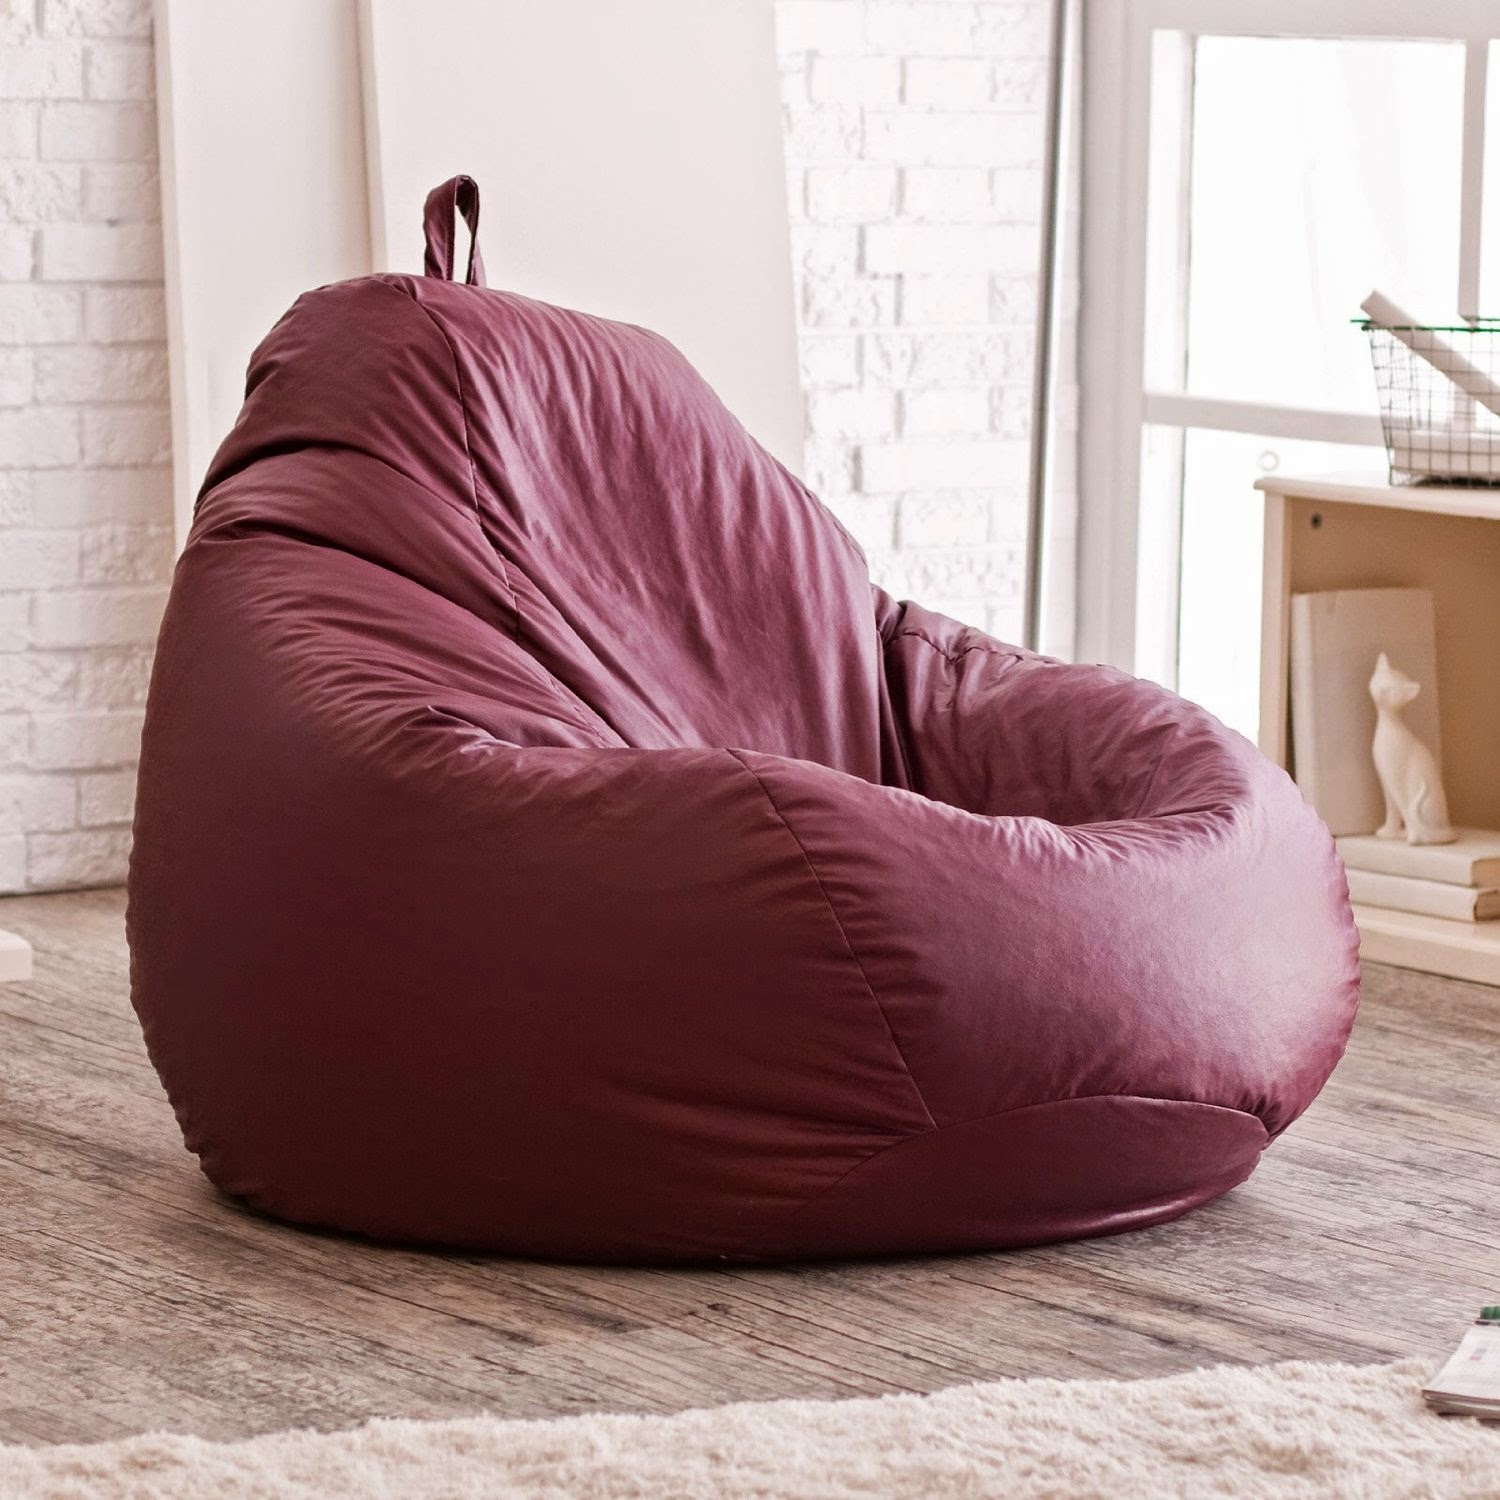 About Vinyl Bean Bag Chairs